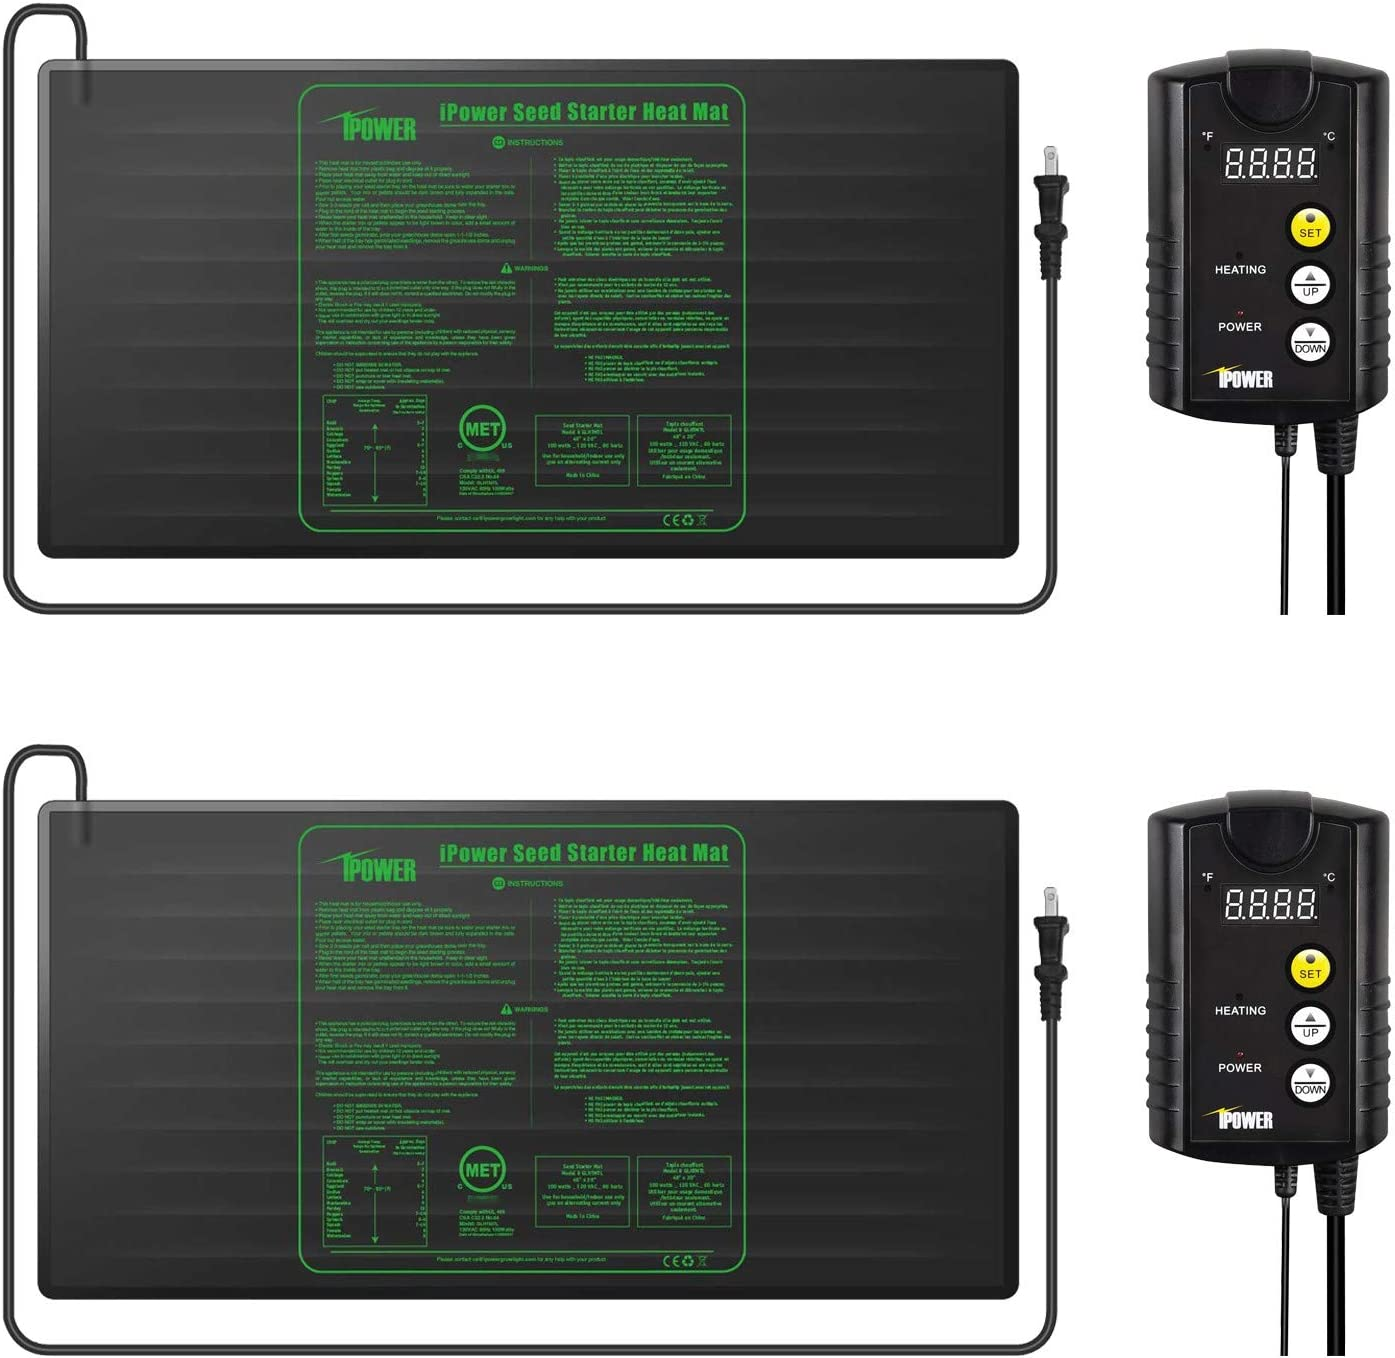 "iPower GLHTMTCTRLHTMTLX2 2 Pack 48"" x 20"" Warm Hydroponic Seedling Heat Mat and Digital Thermostat Control Combo Set for Plant Germination, Black"